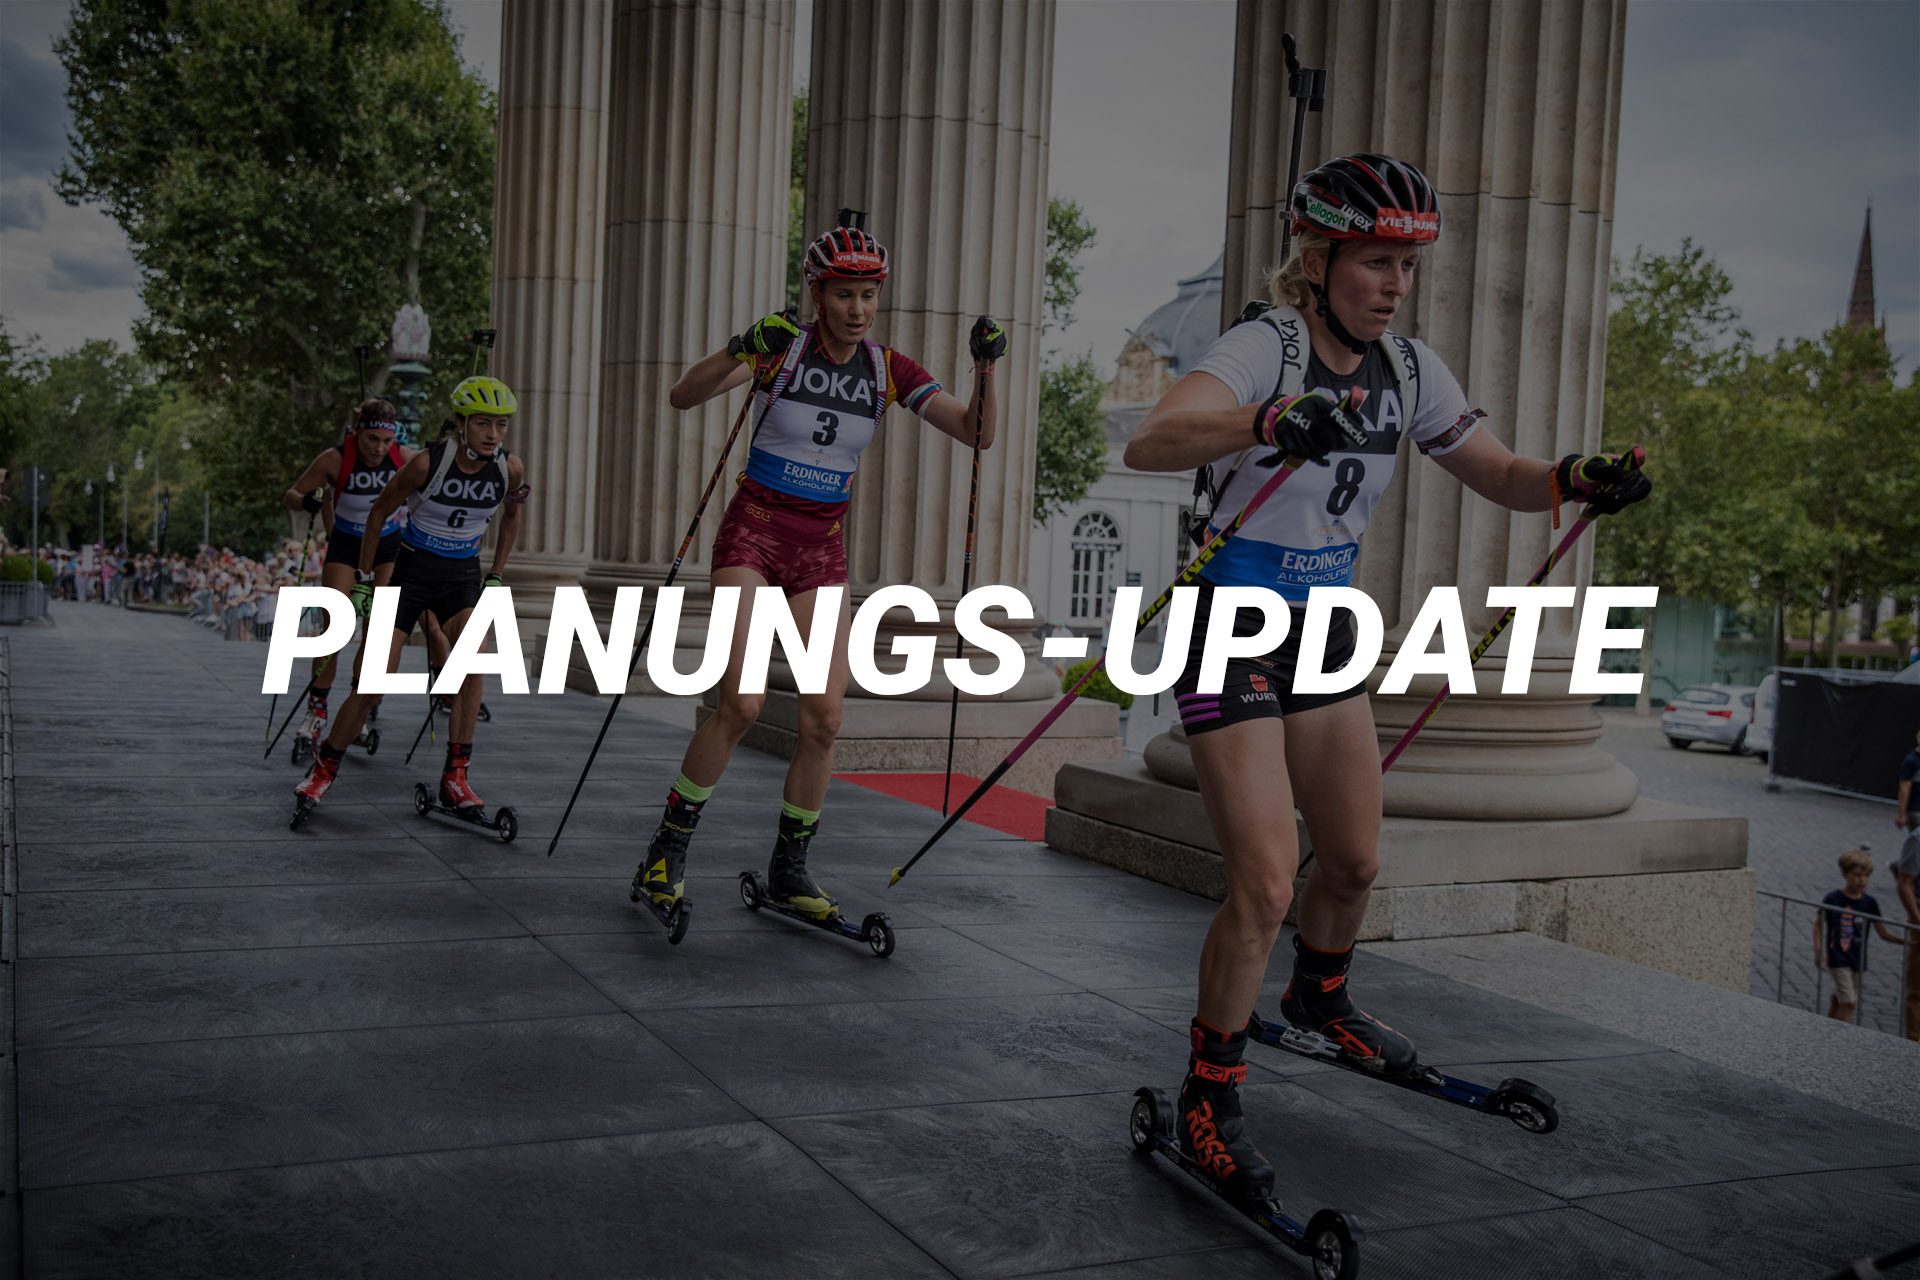 Planungs-Update